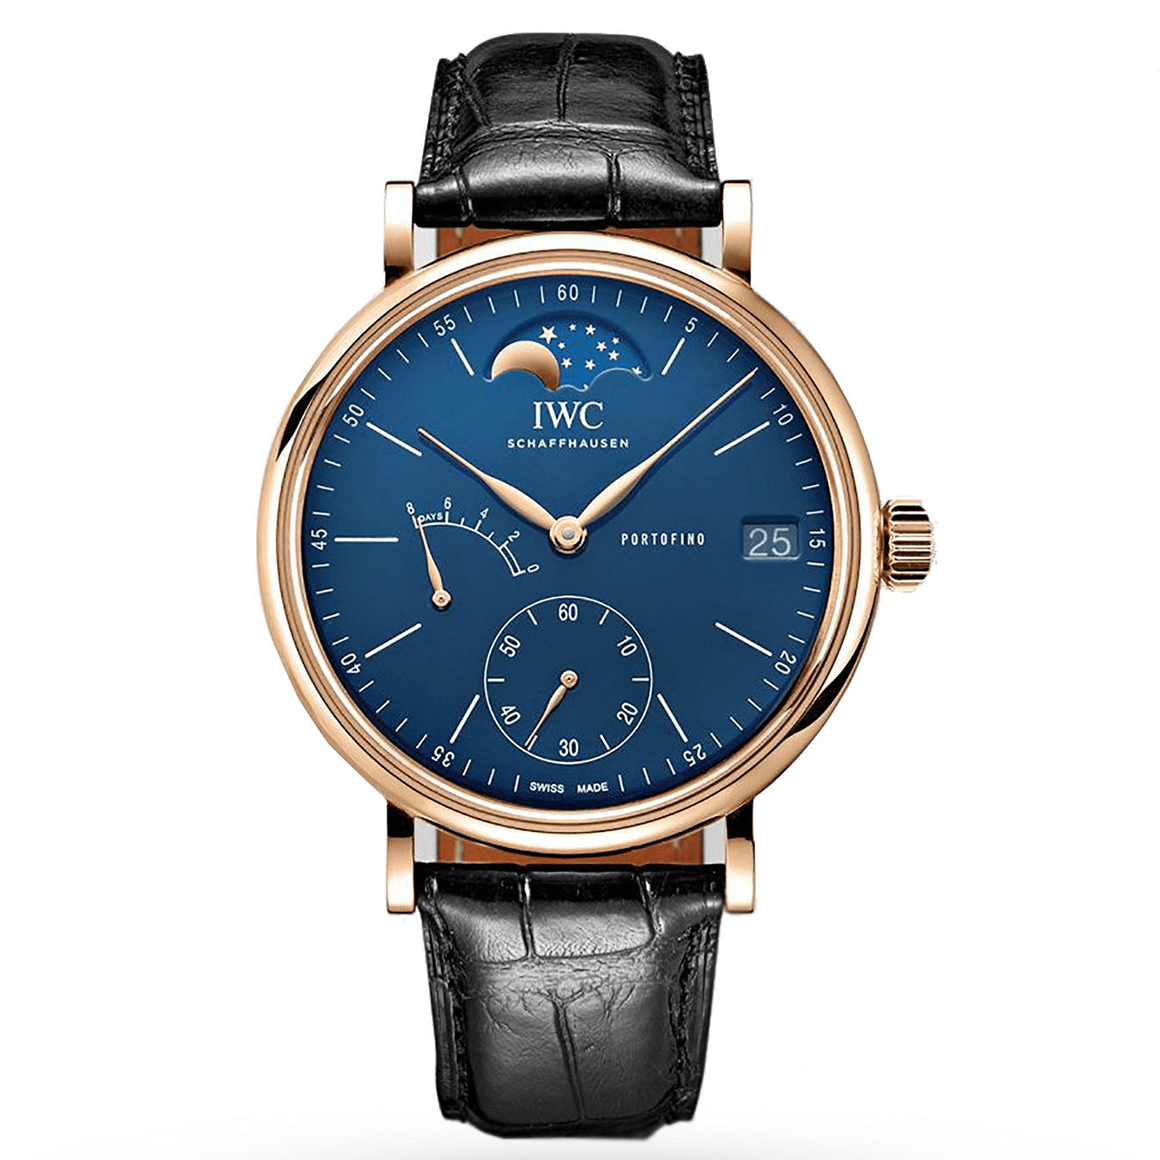 Men's IWC Portofino Hand-Wound Moon Phase 150 Years rose gold and blue watch